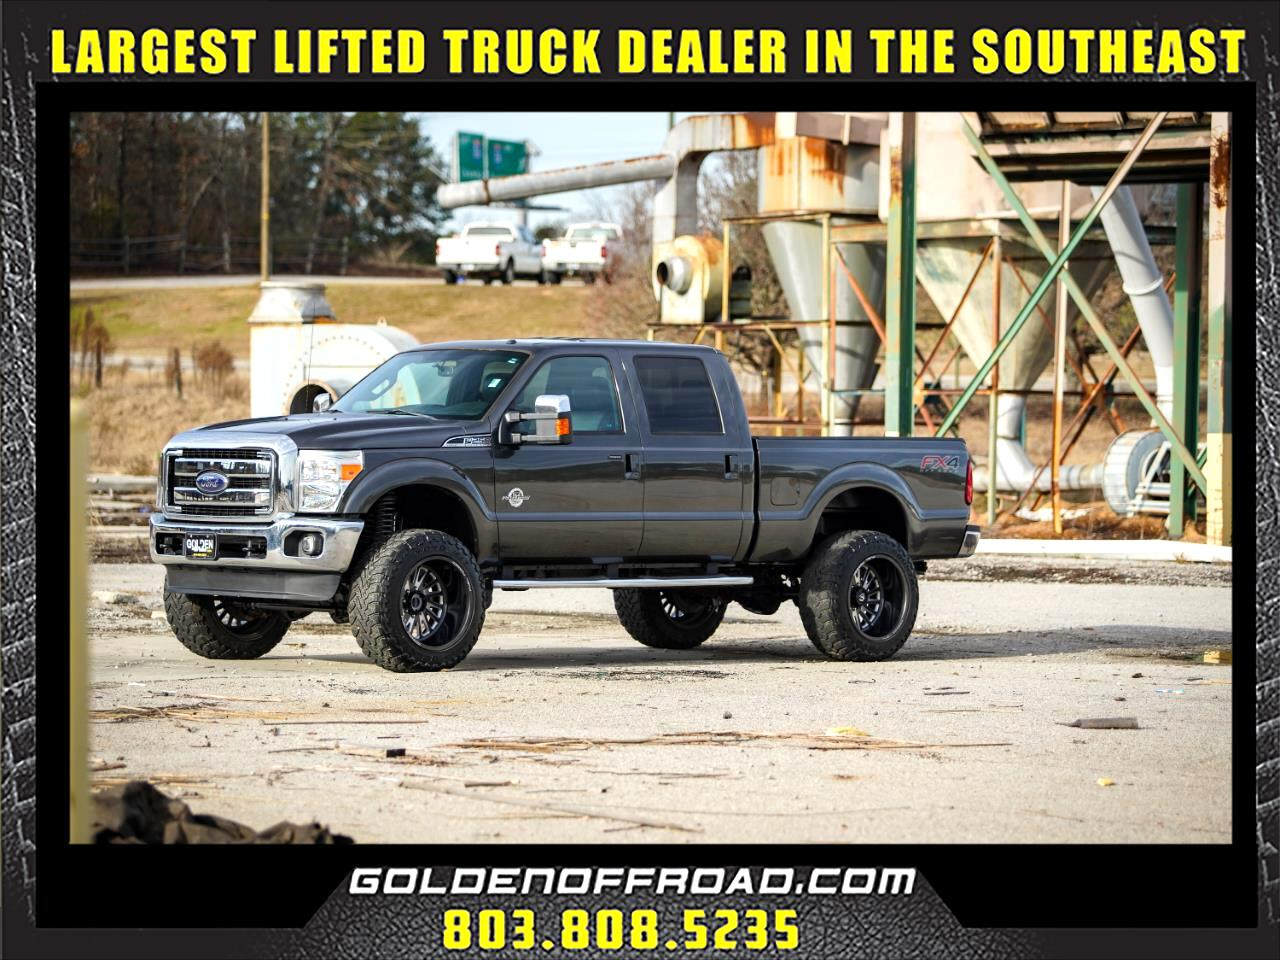 2016 Ford F-250 Crew Cab F250 Lariat Crew Cab LIfted Forged Fuel Toyo 37's